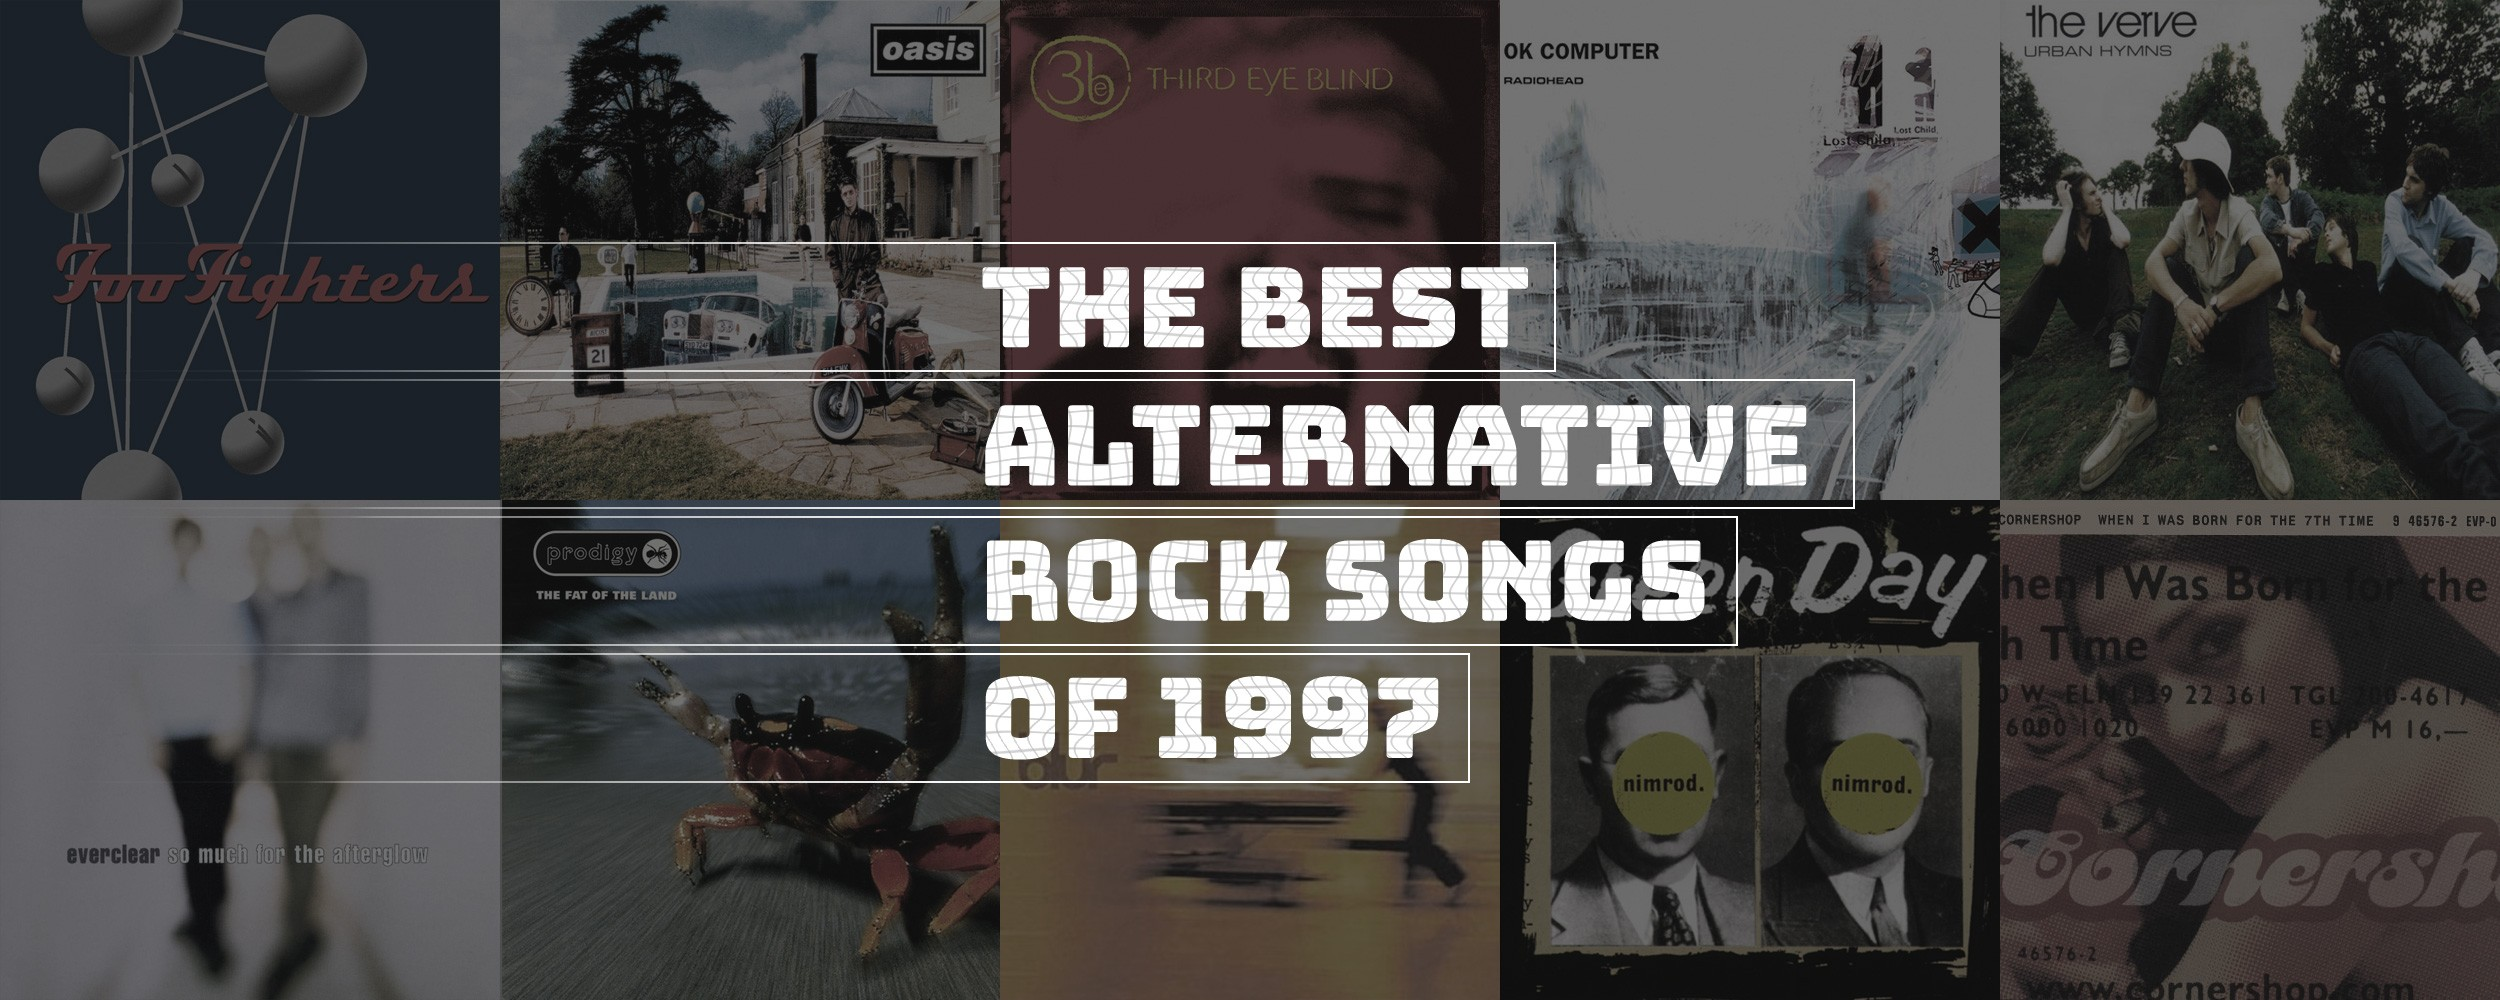 79 Best Alternative Rock Songs Of 1997 Spin Page 3 Tendencies Caps Navy Pop The